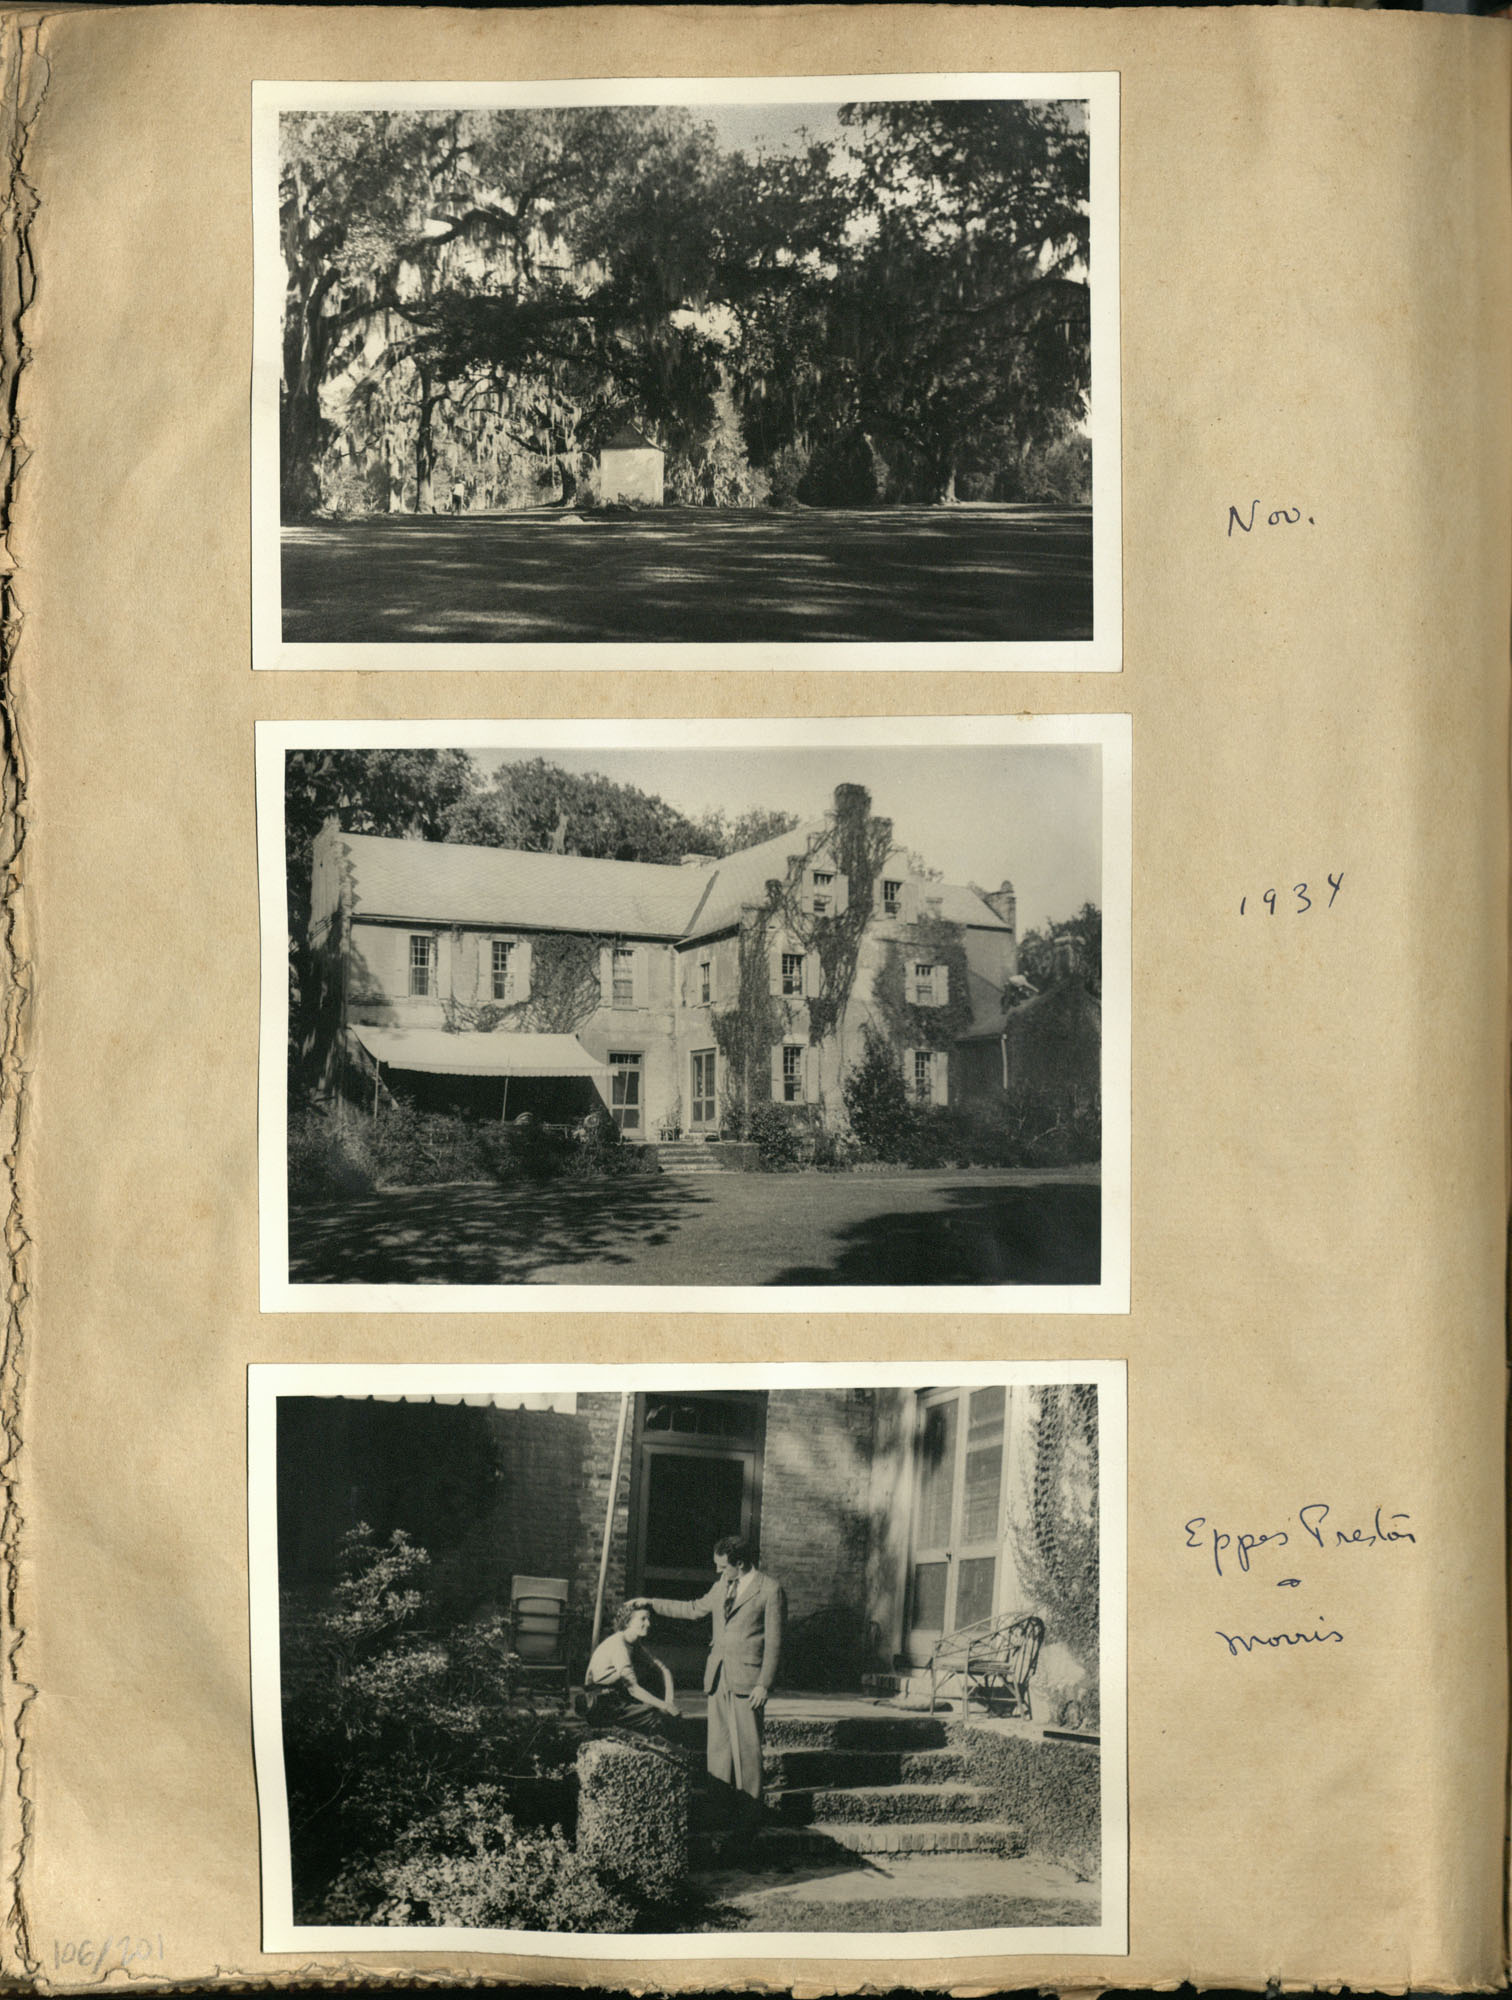 Early Medway and travels album, 1929-1937, page 106